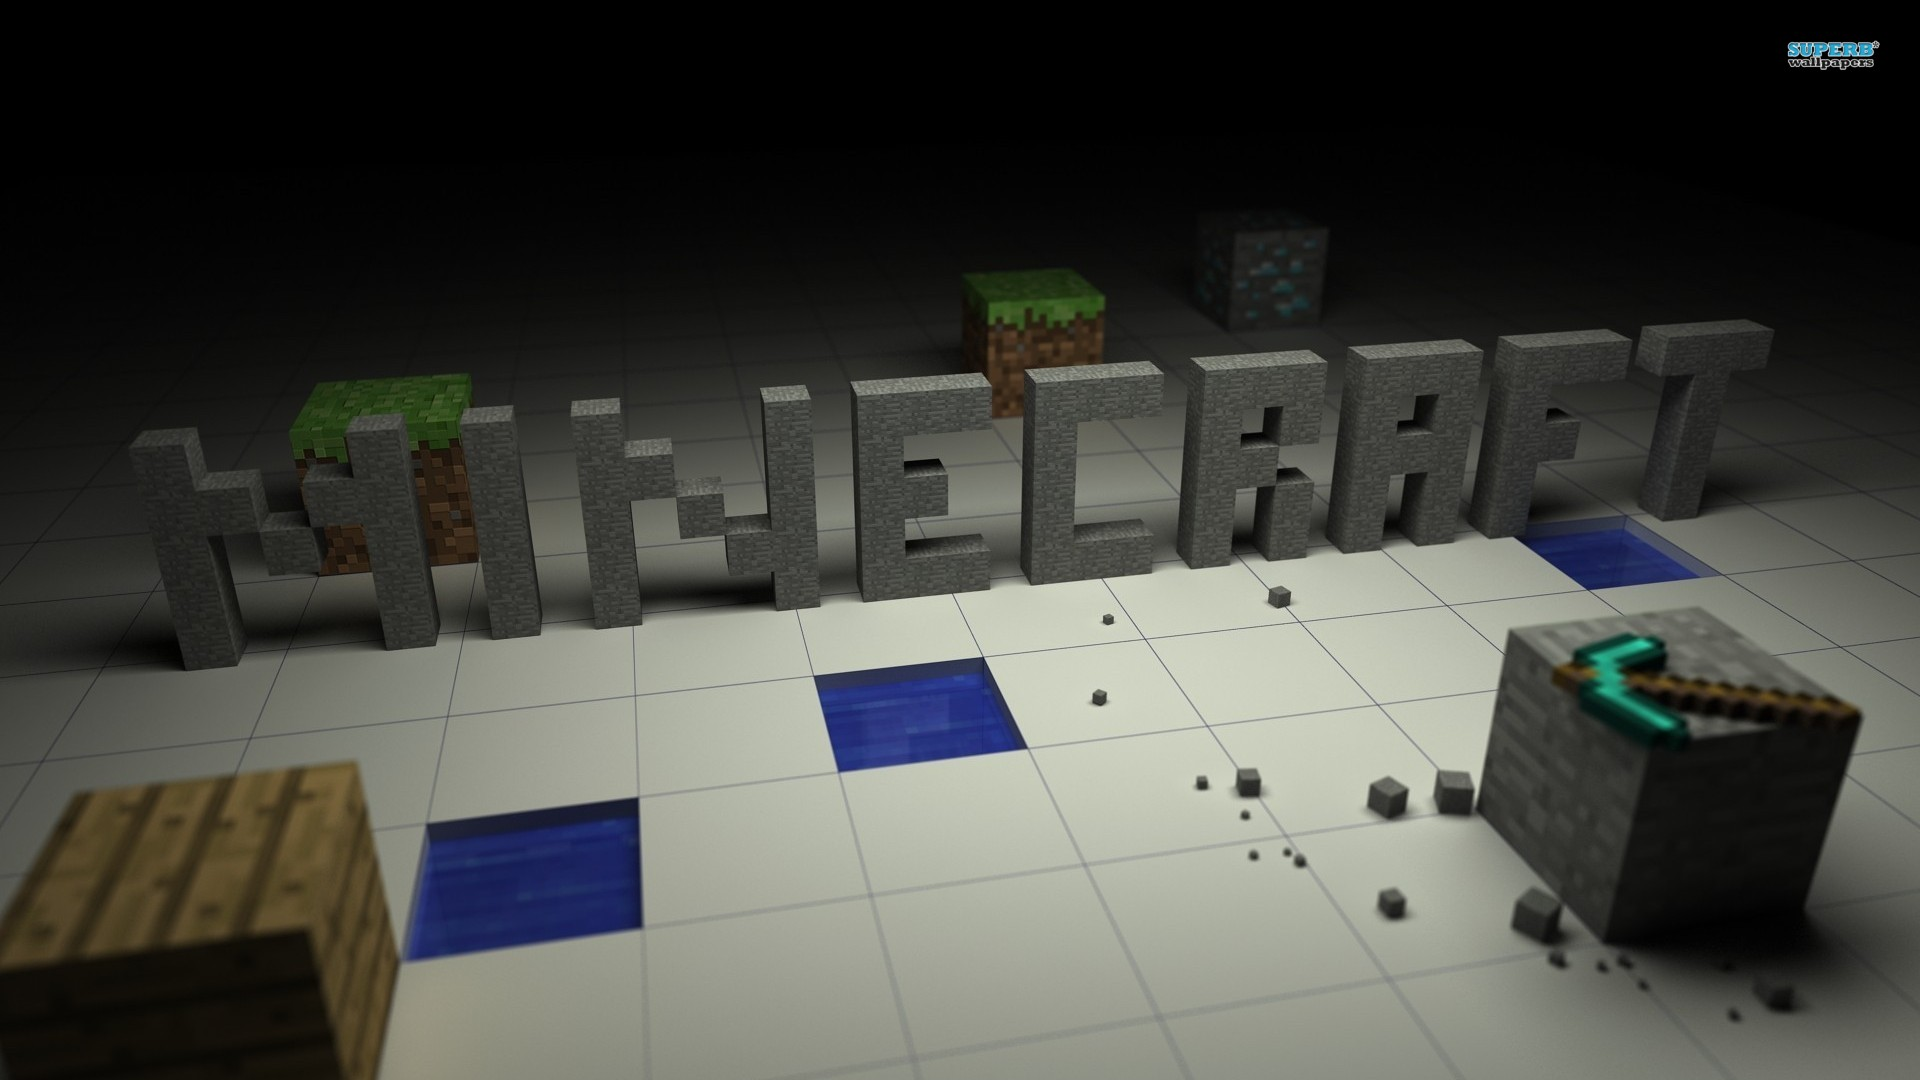 minecraft wallpaper game wallpapers #8169